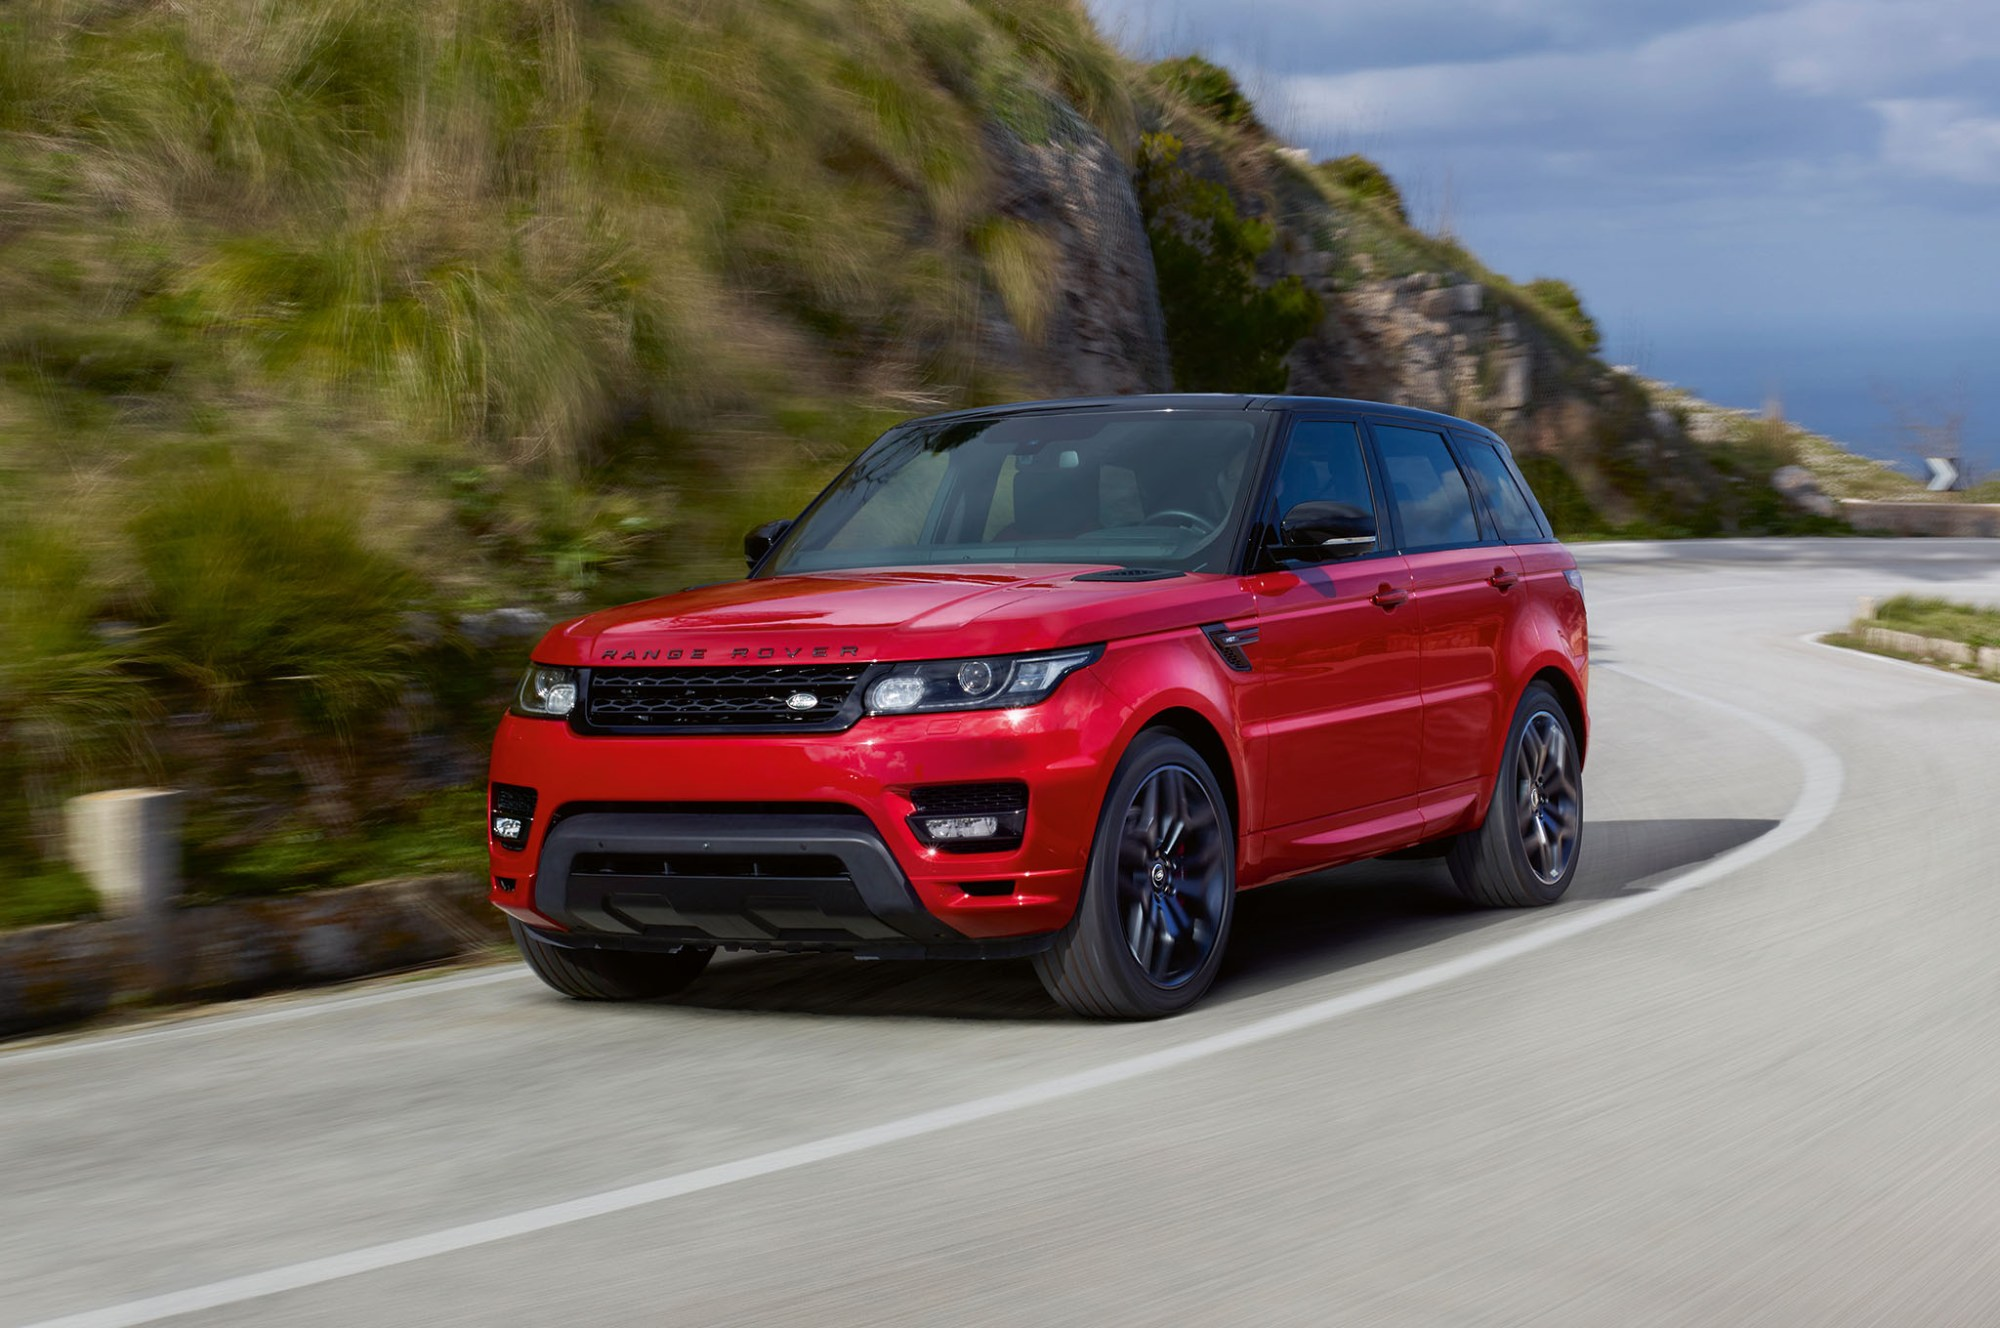 hight resolution of 2016 land rover range rover sport hst limited edition